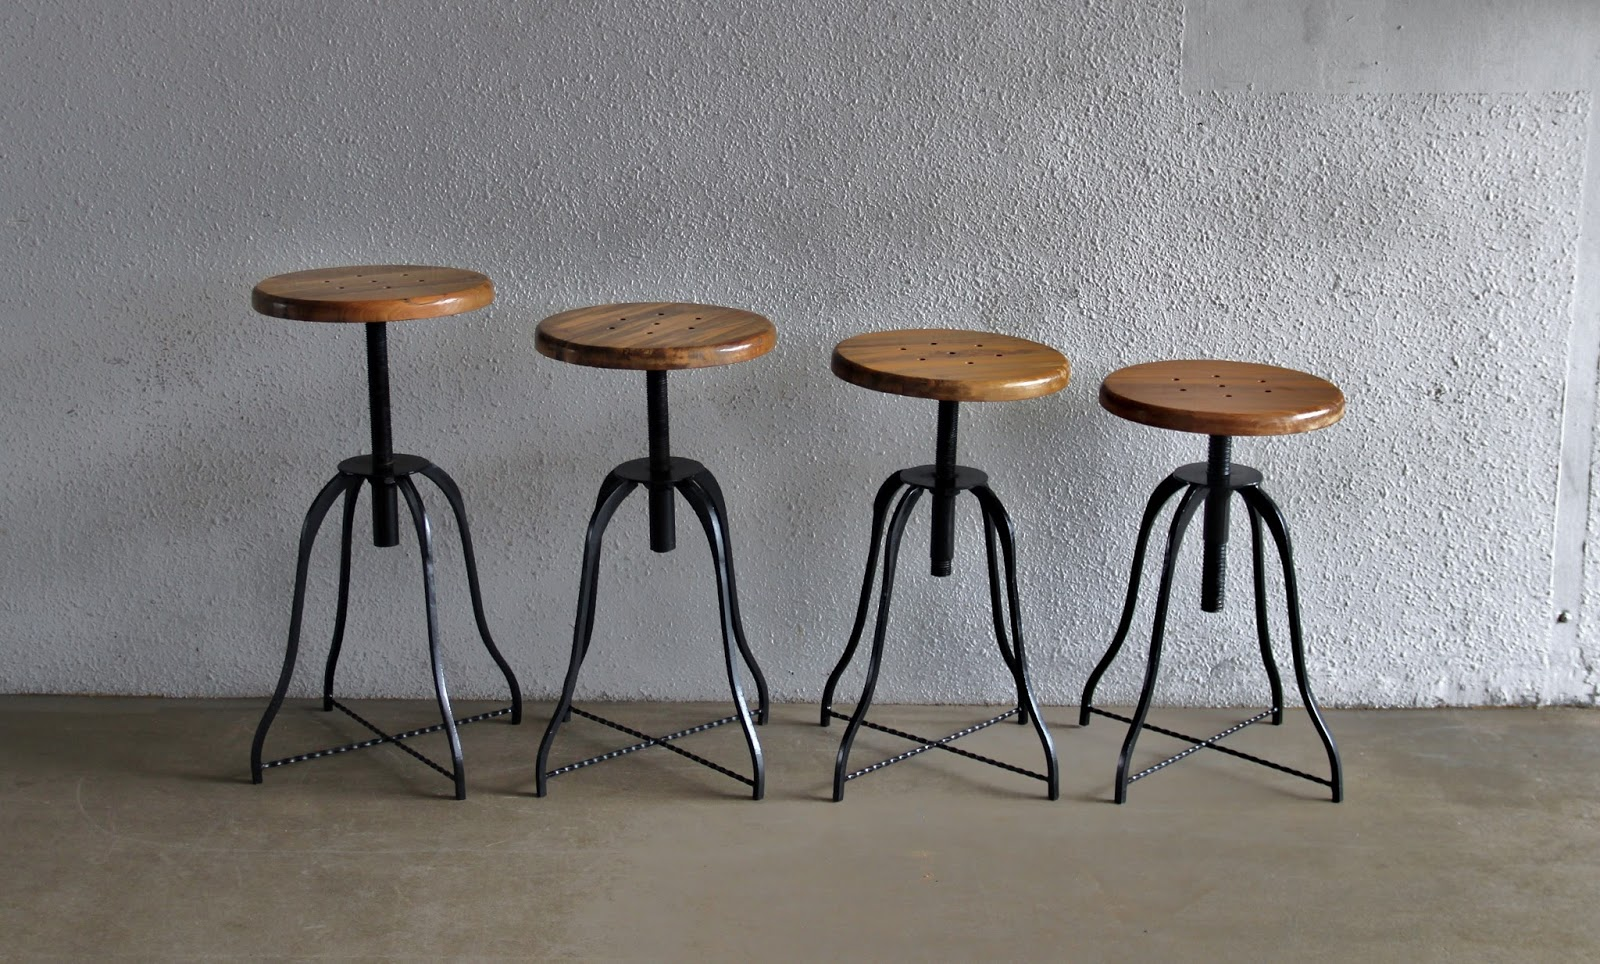 Amazing photo of round industrial stool solid teak top swivel to a bar stool height $  with #886343 color and 1600x964 pixels